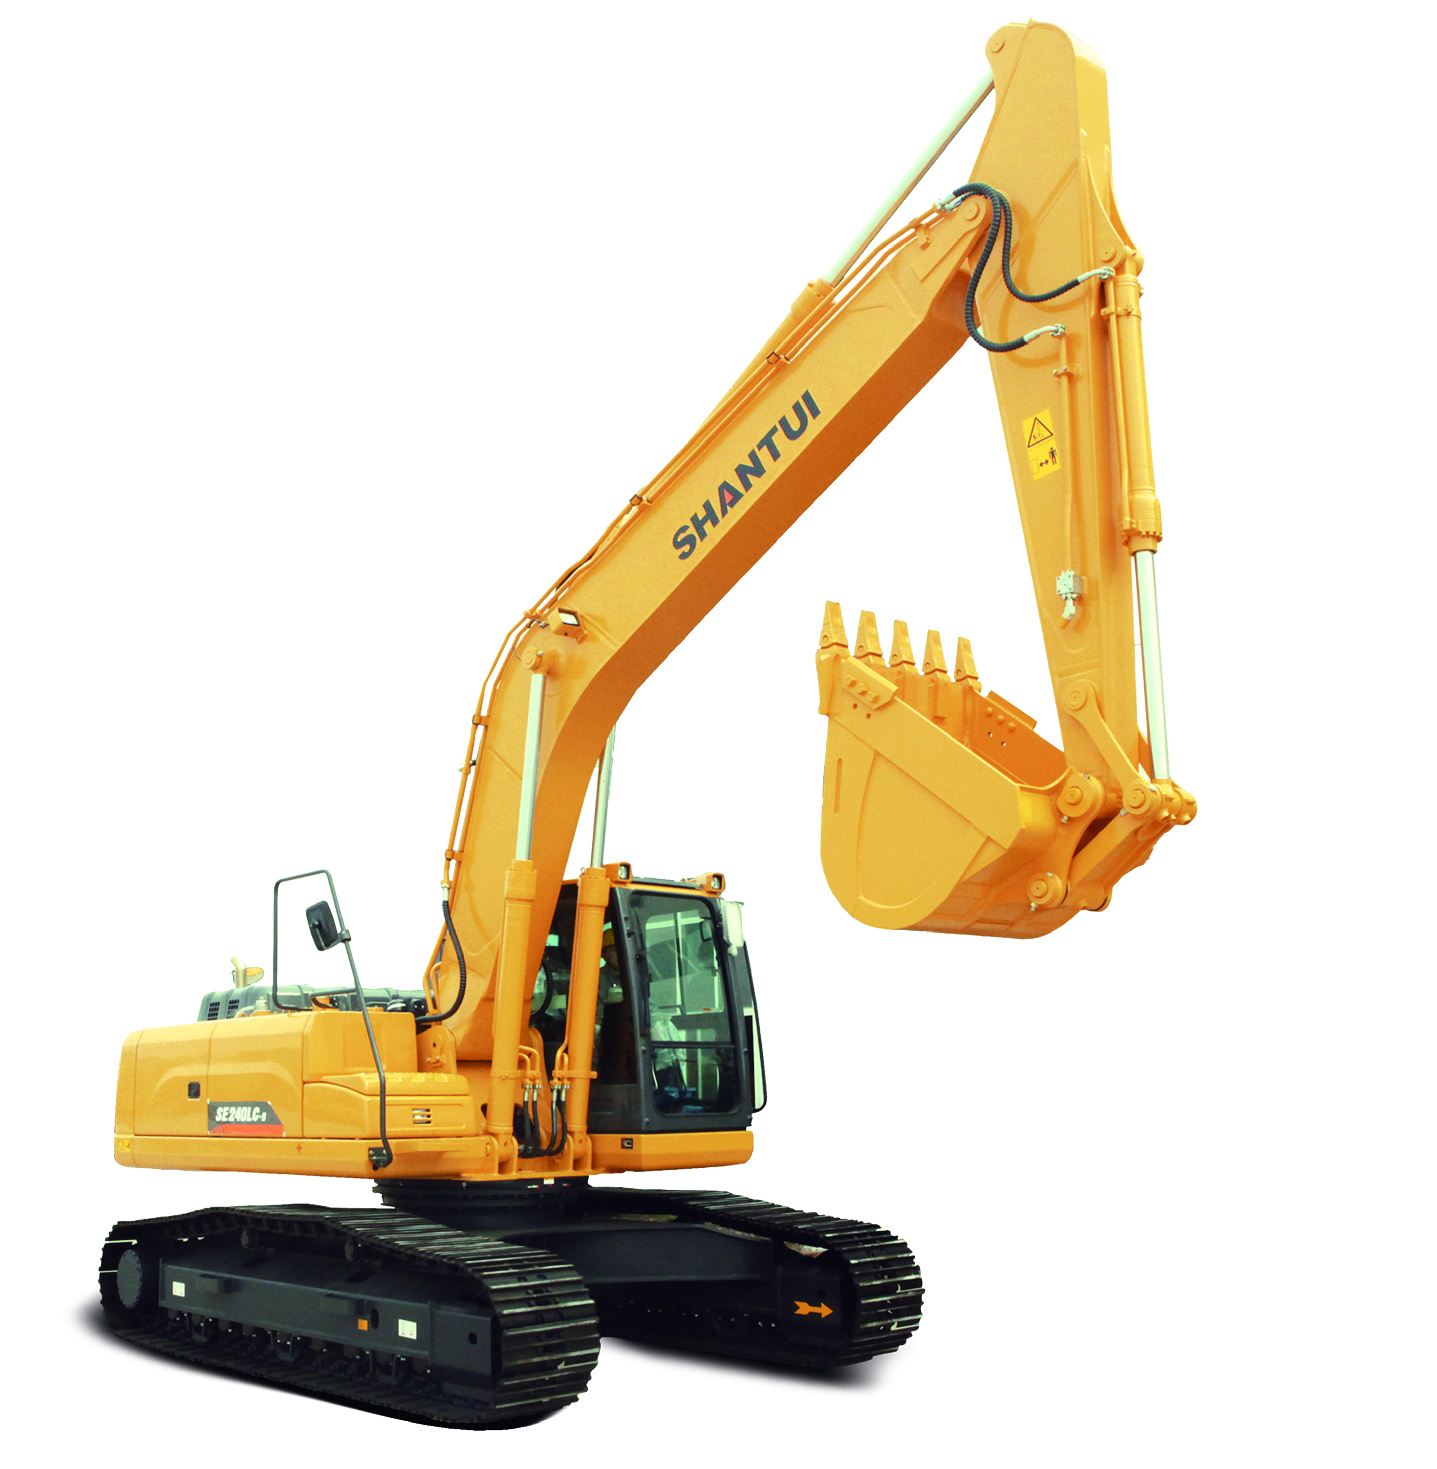 Shantui 24.8ton Medium-Sized Crawler Excavator